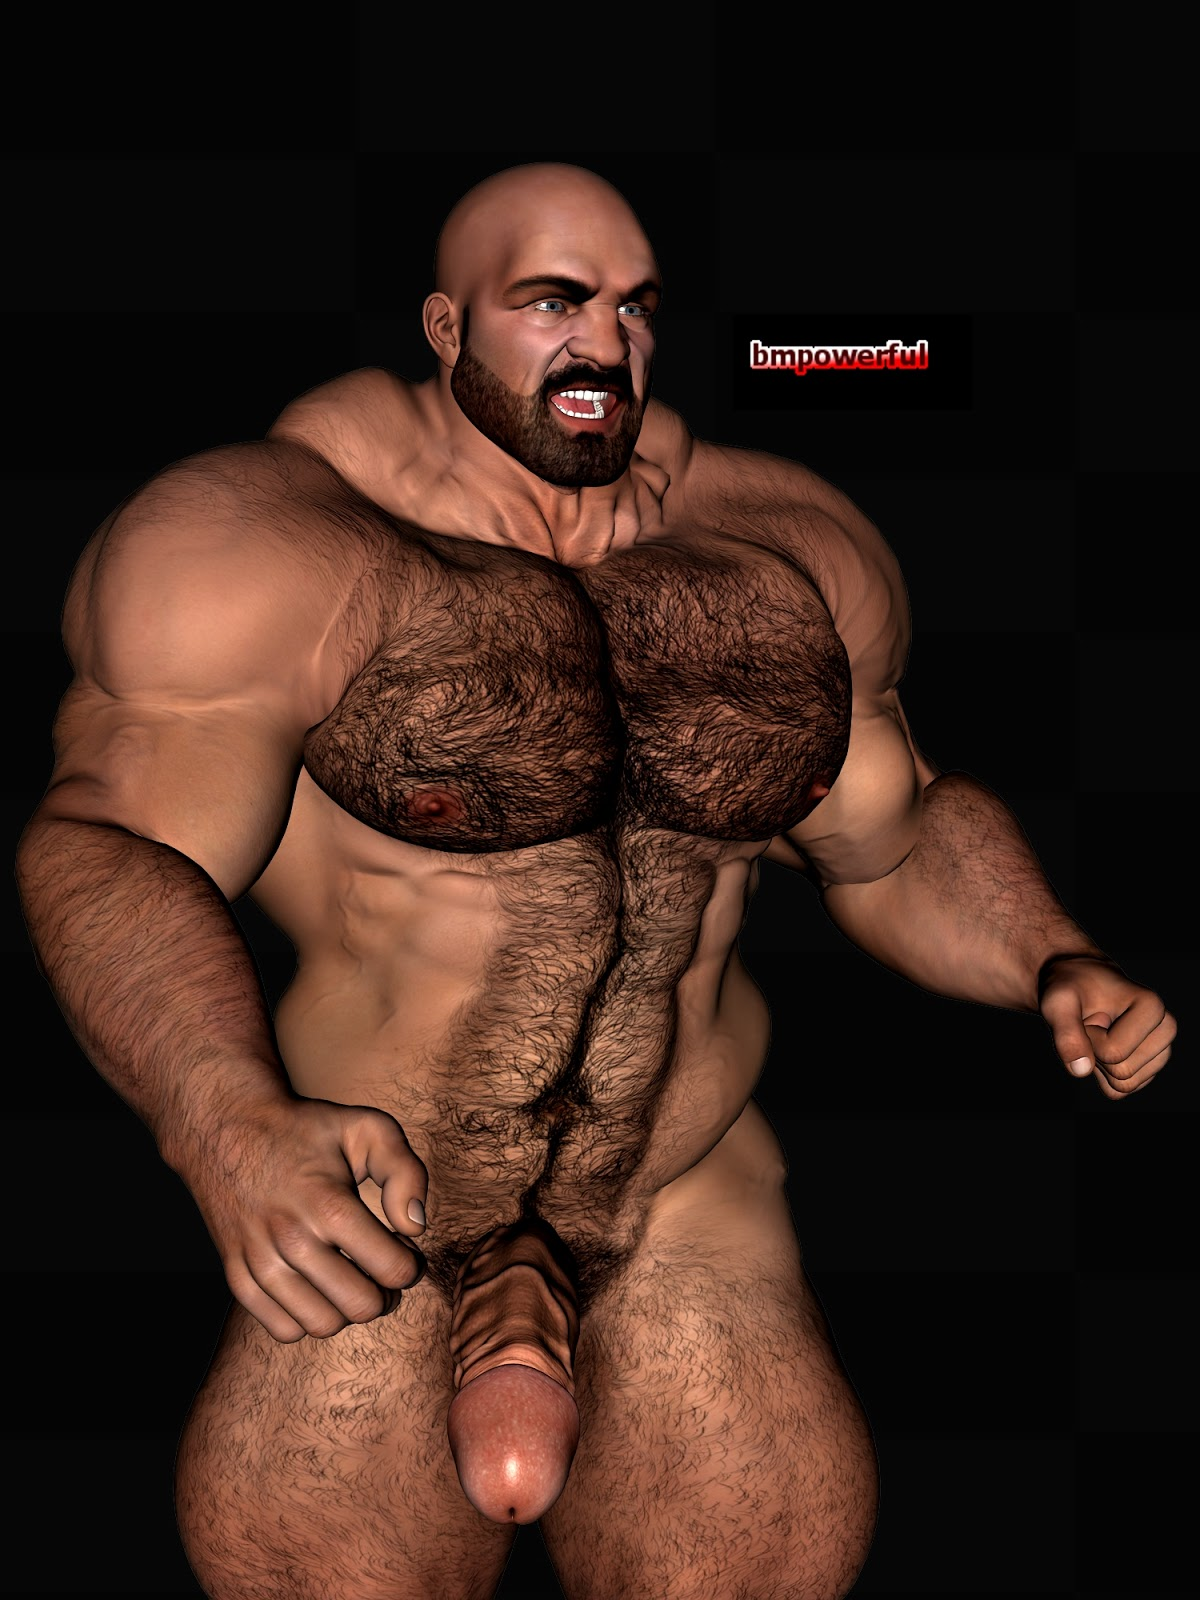 Big dick big muscle confirm. happens